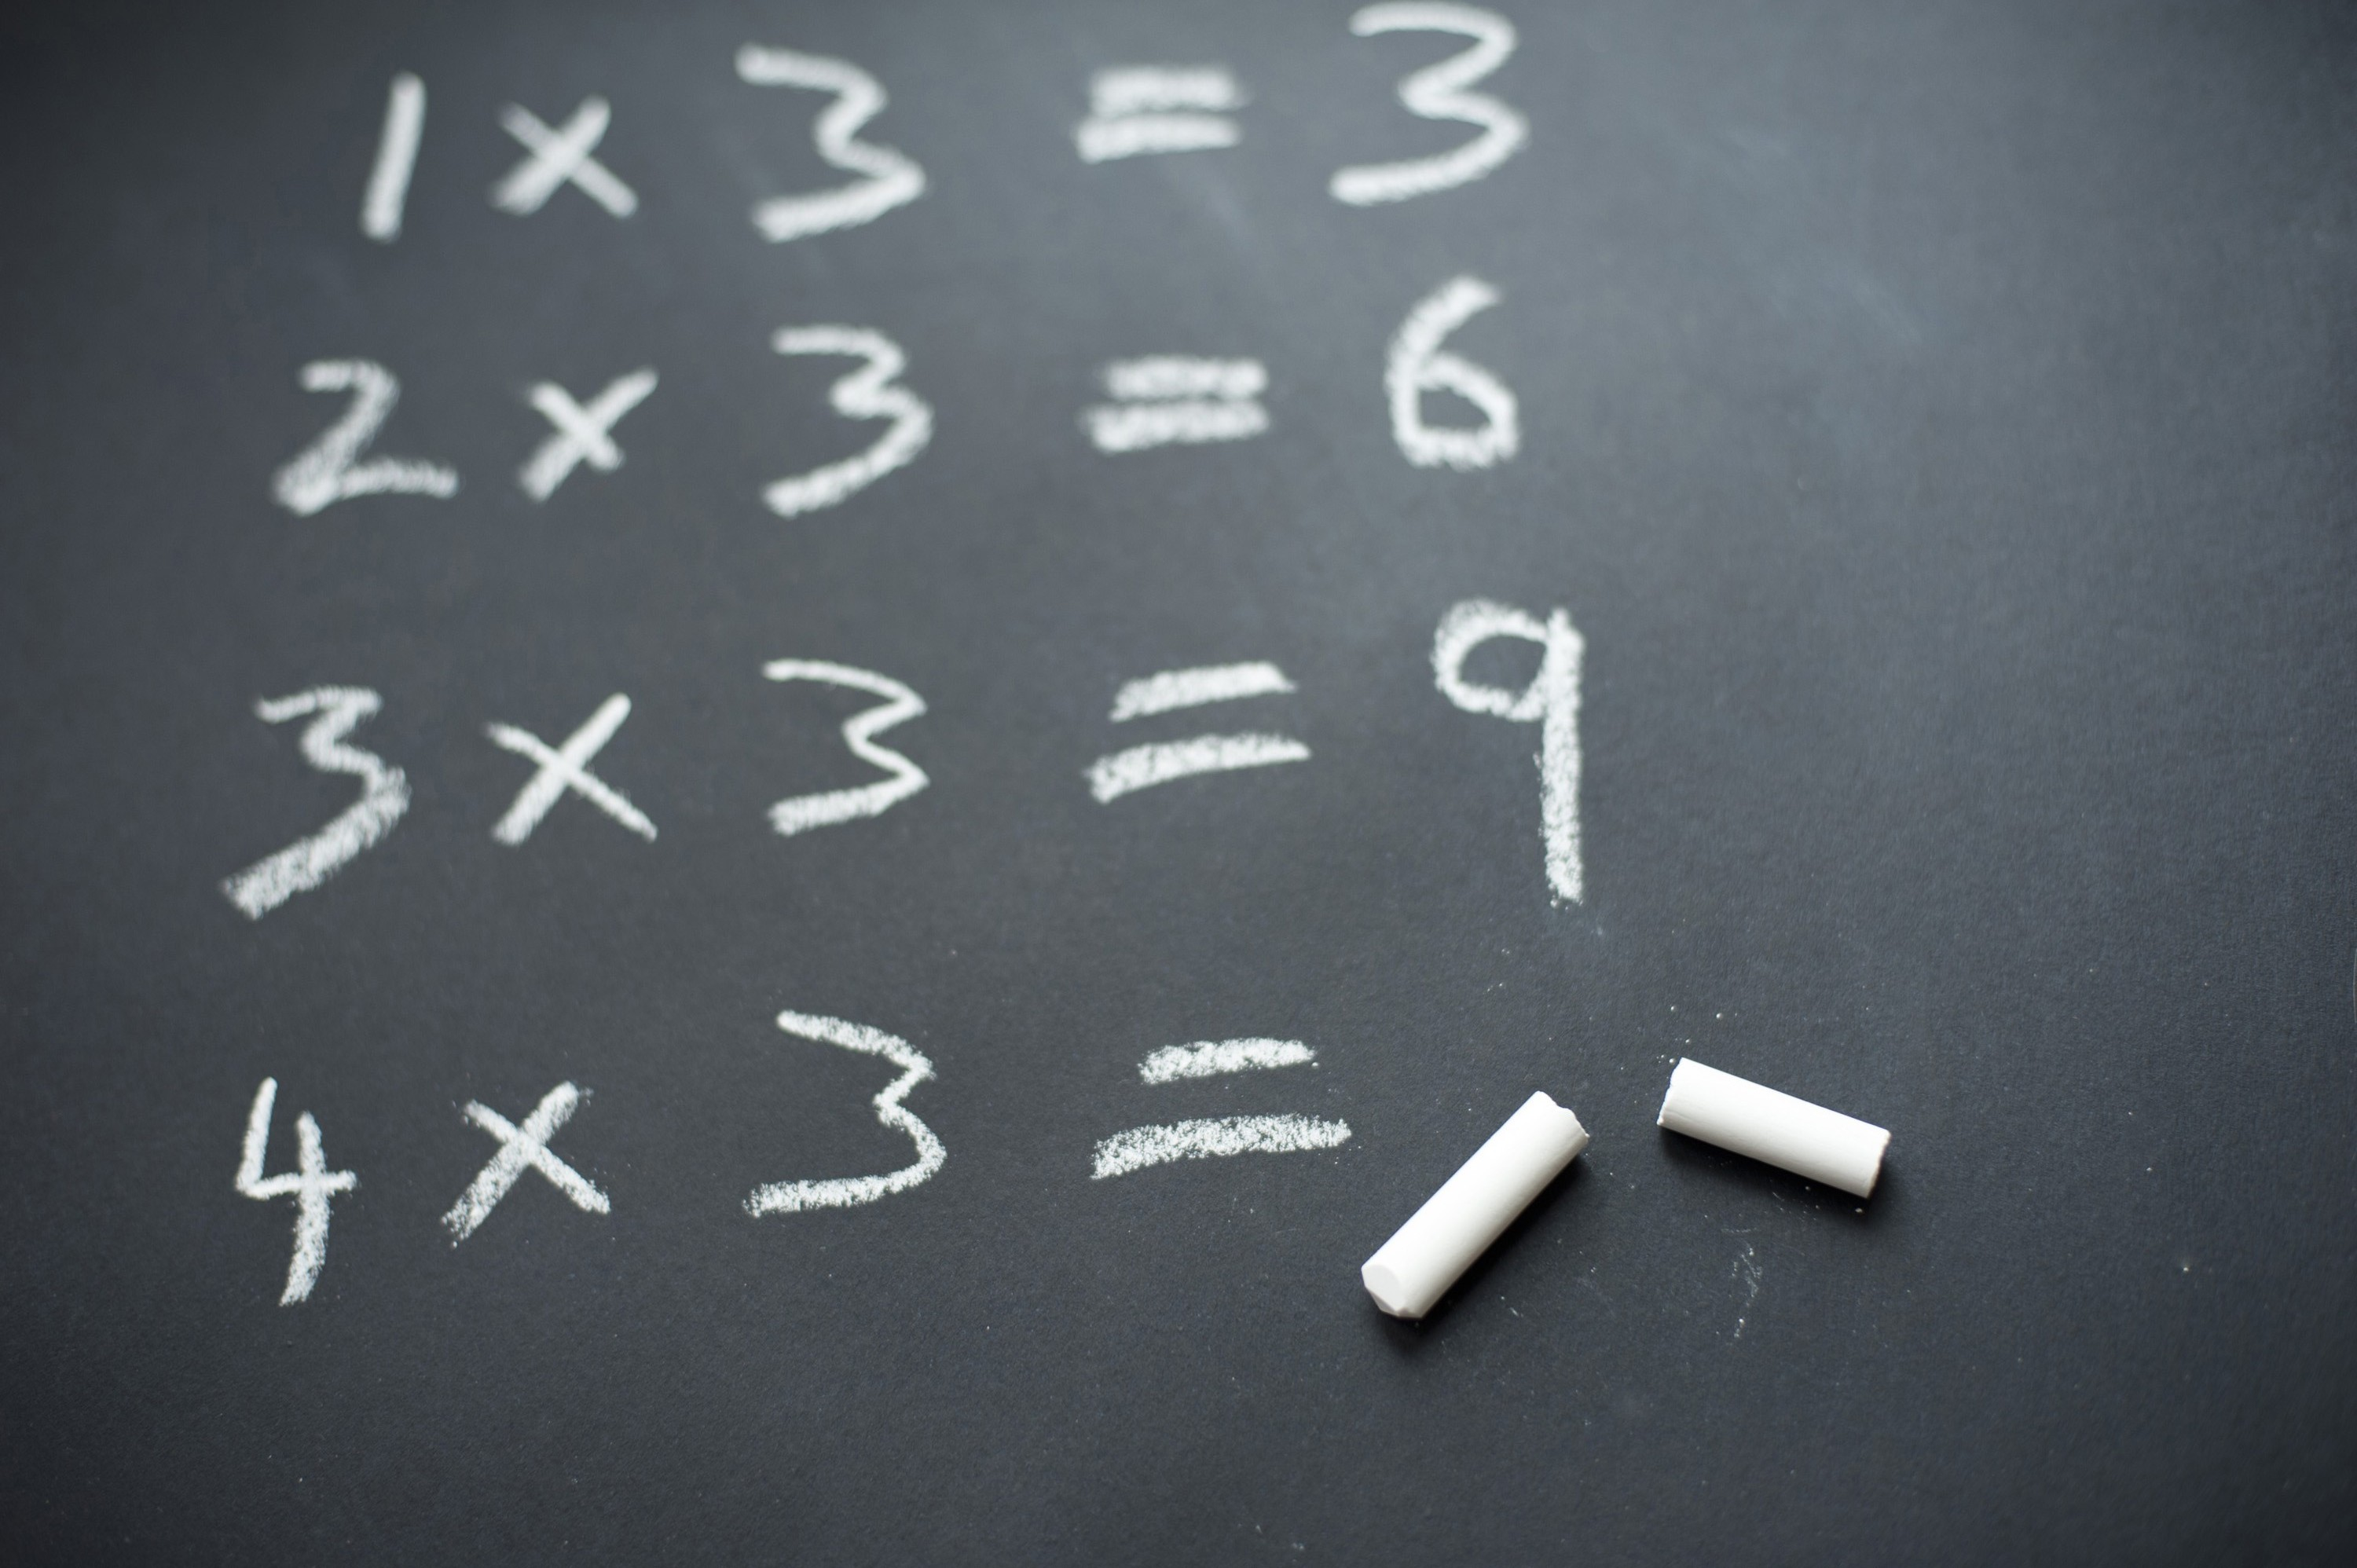 free image of chalkboard three times tables